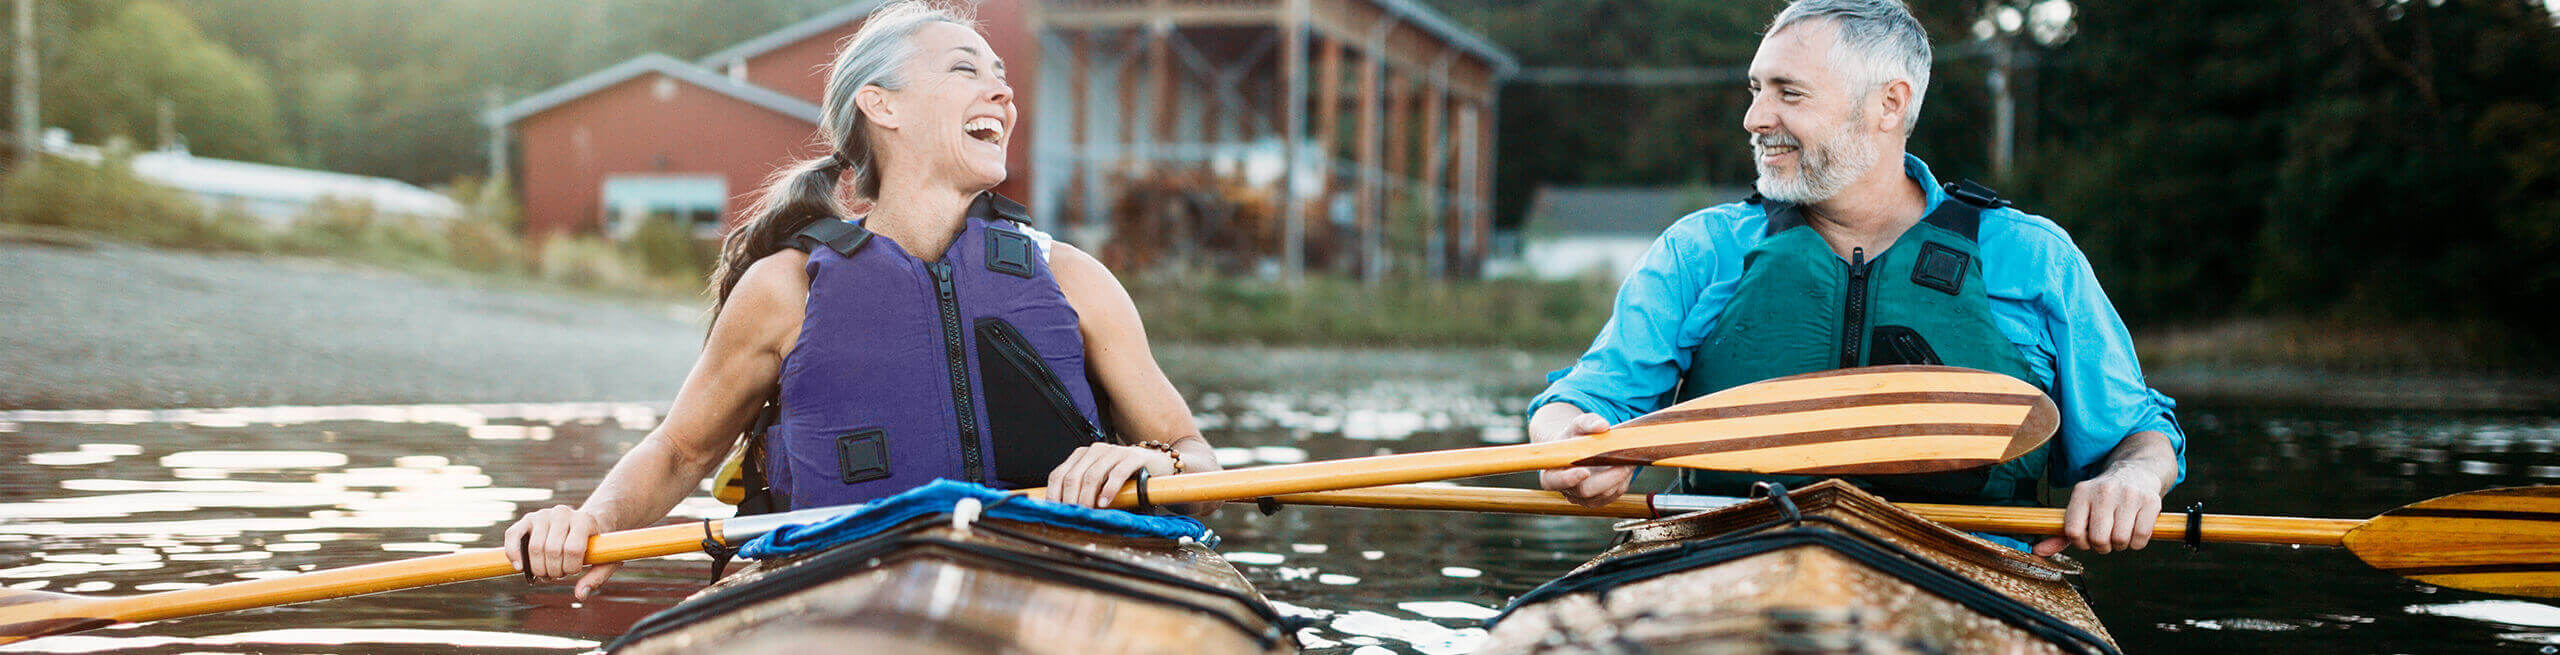 couple kayaking down a river together